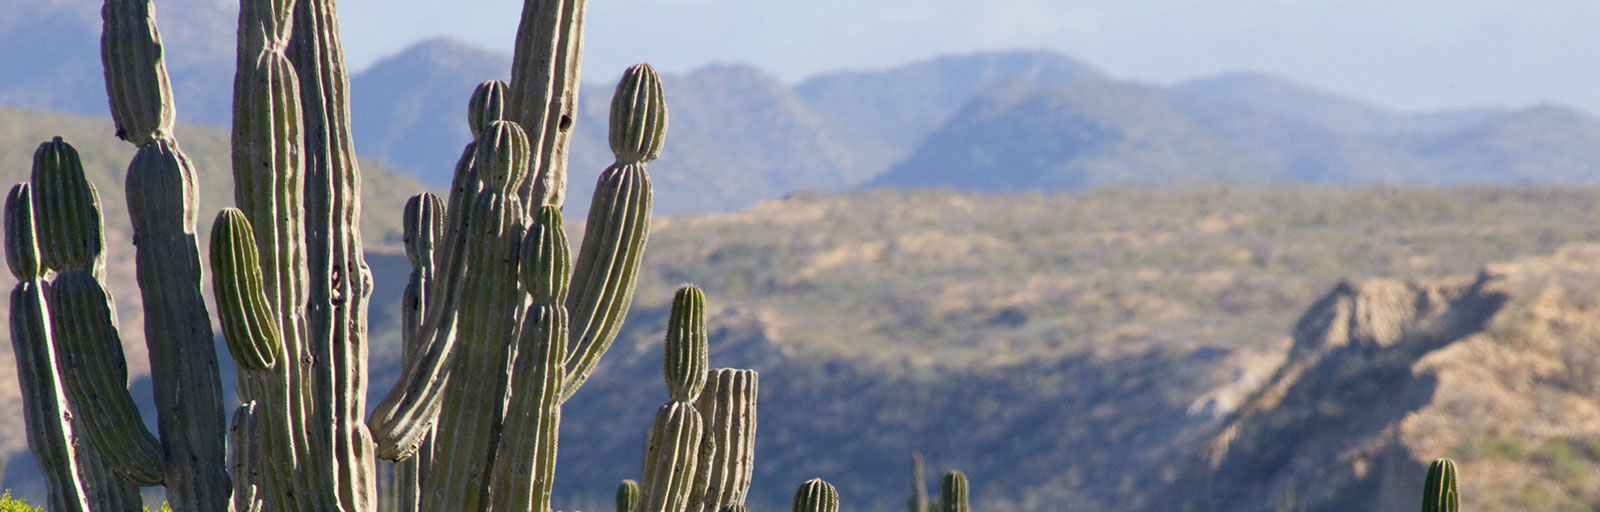 Hiking & Yoga Retreat in Mexico: Cardon Cactus and Mountain View